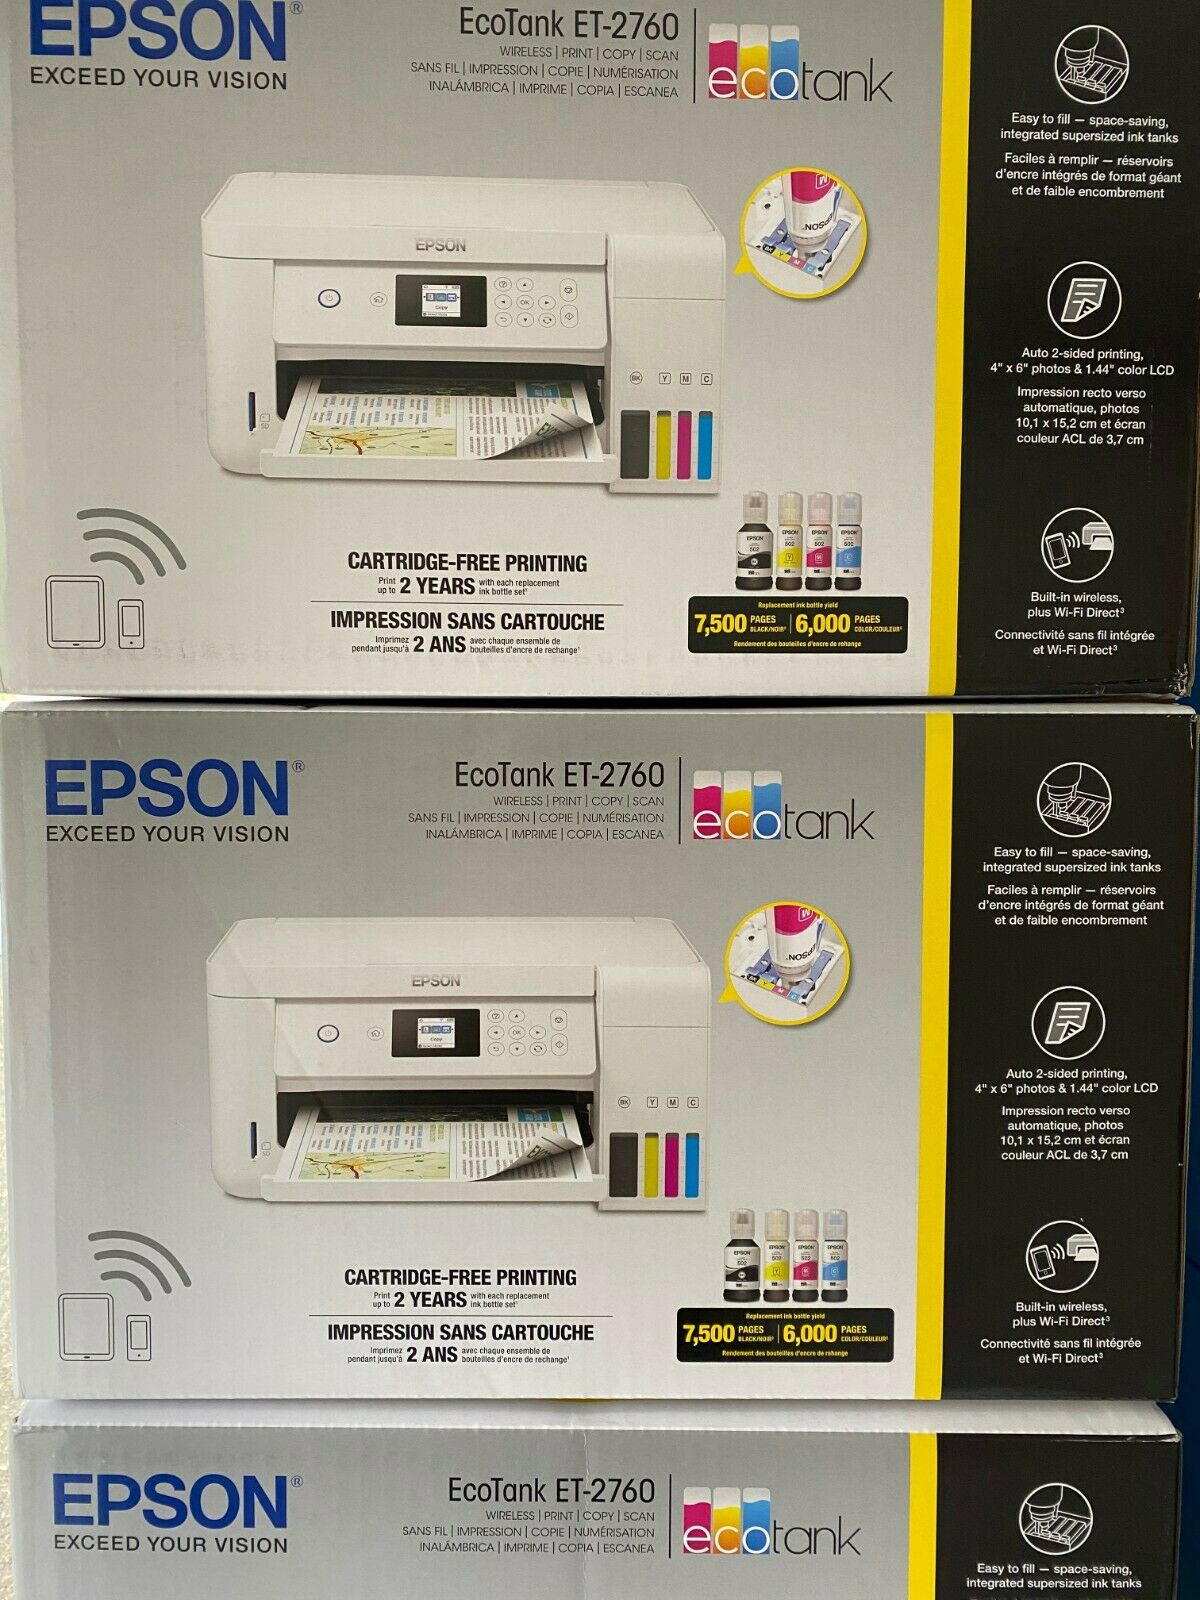 Epson EcoTank ET-2760 Wireless Color All-in-One Supertank Printer 🚚 FREE SHIP. Buy it now for 294.97